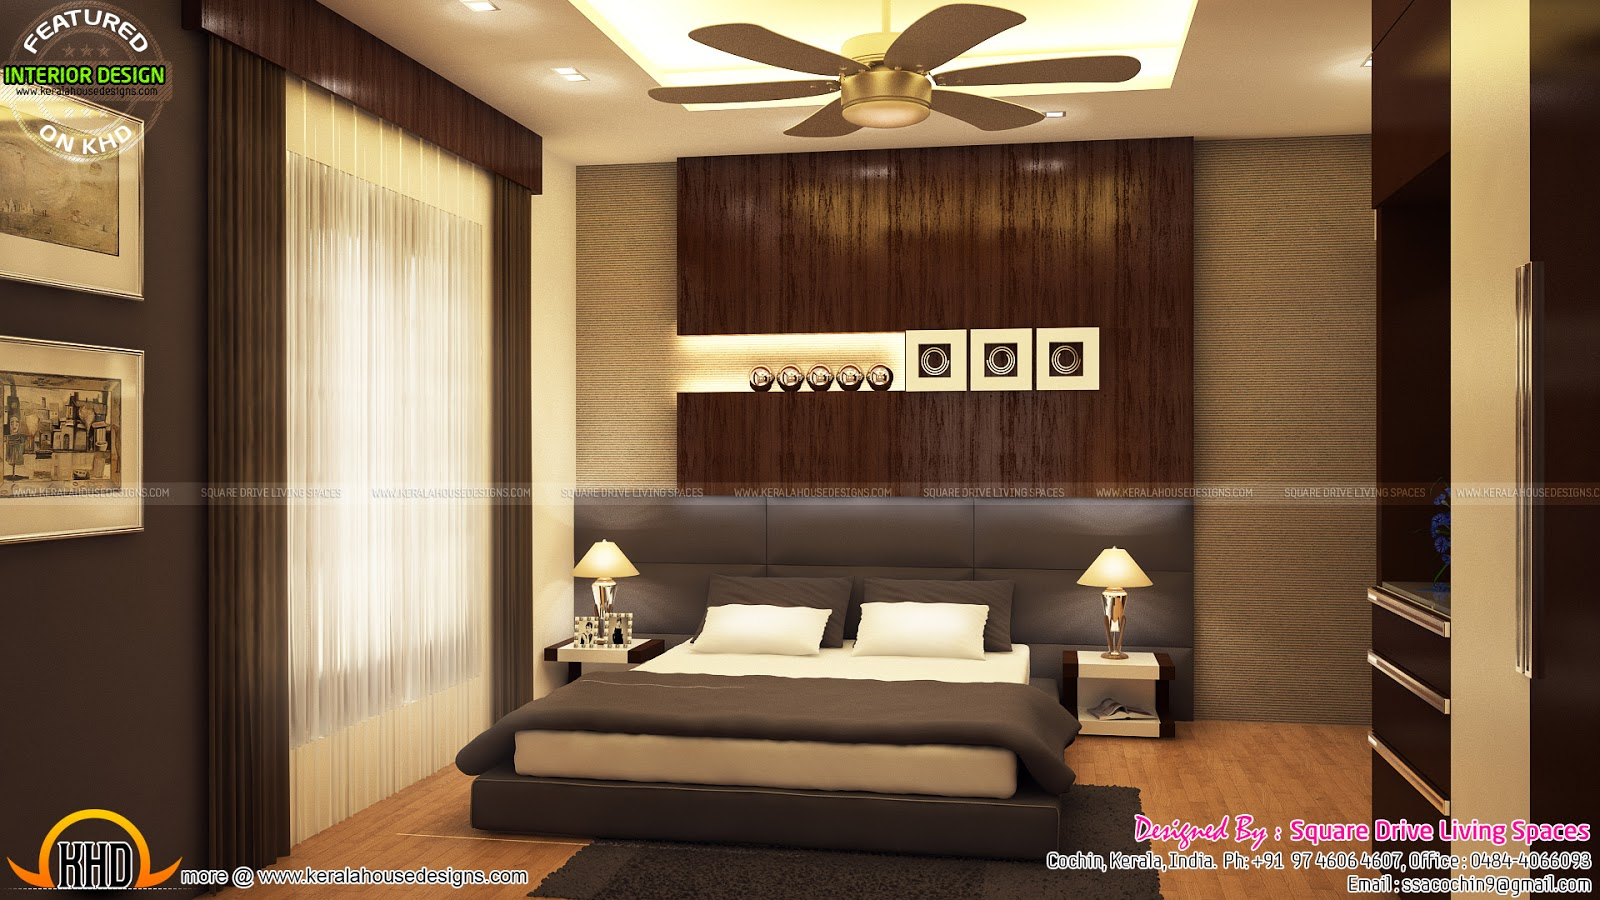 Interior designs of master bedroom living kitchen and for Bedroom interior design india